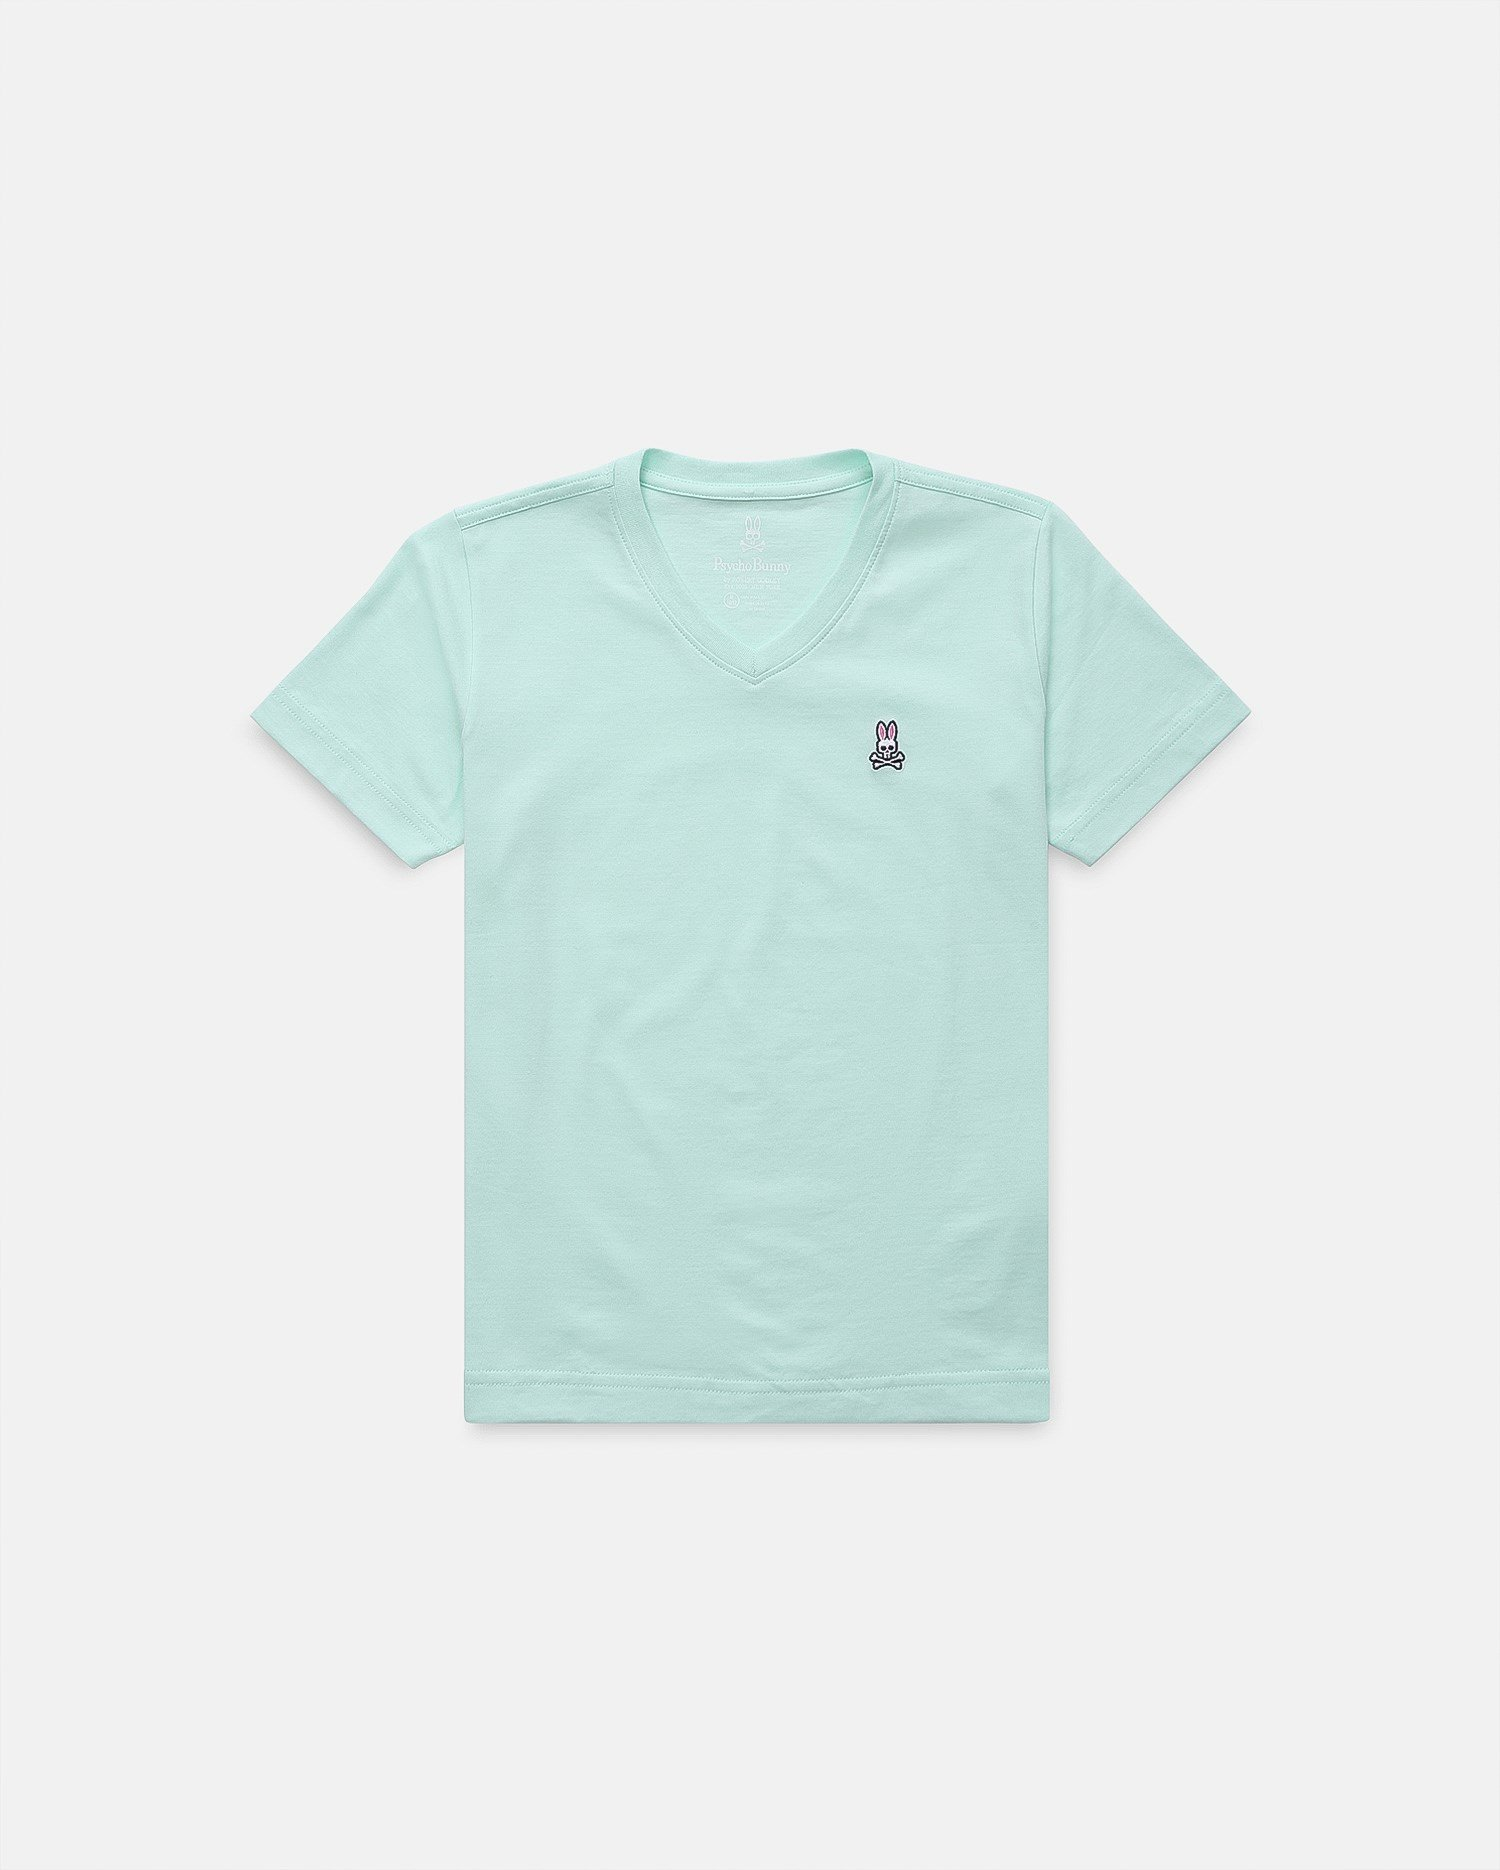 Boys V Neck Tee - Honeydew | Psycho Bunny